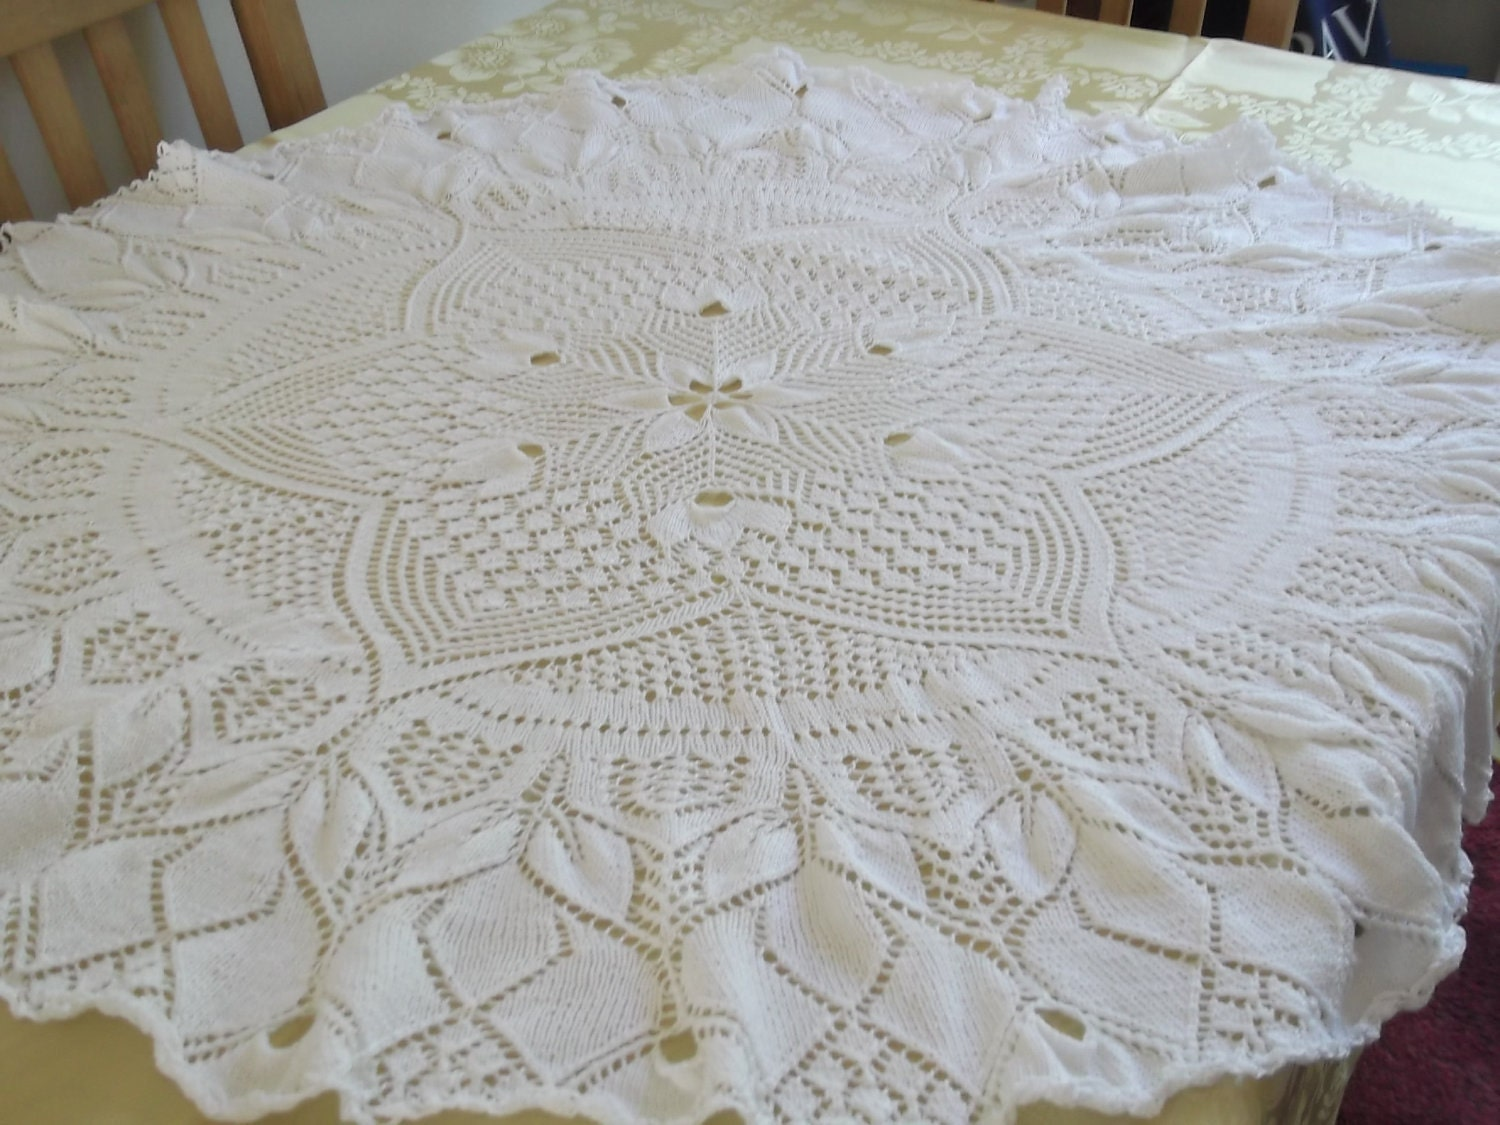 Knitting Pattern For Lace Tablecloth : Hand Knitted White Lace Tablecloth by margaretscrafting on Etsy